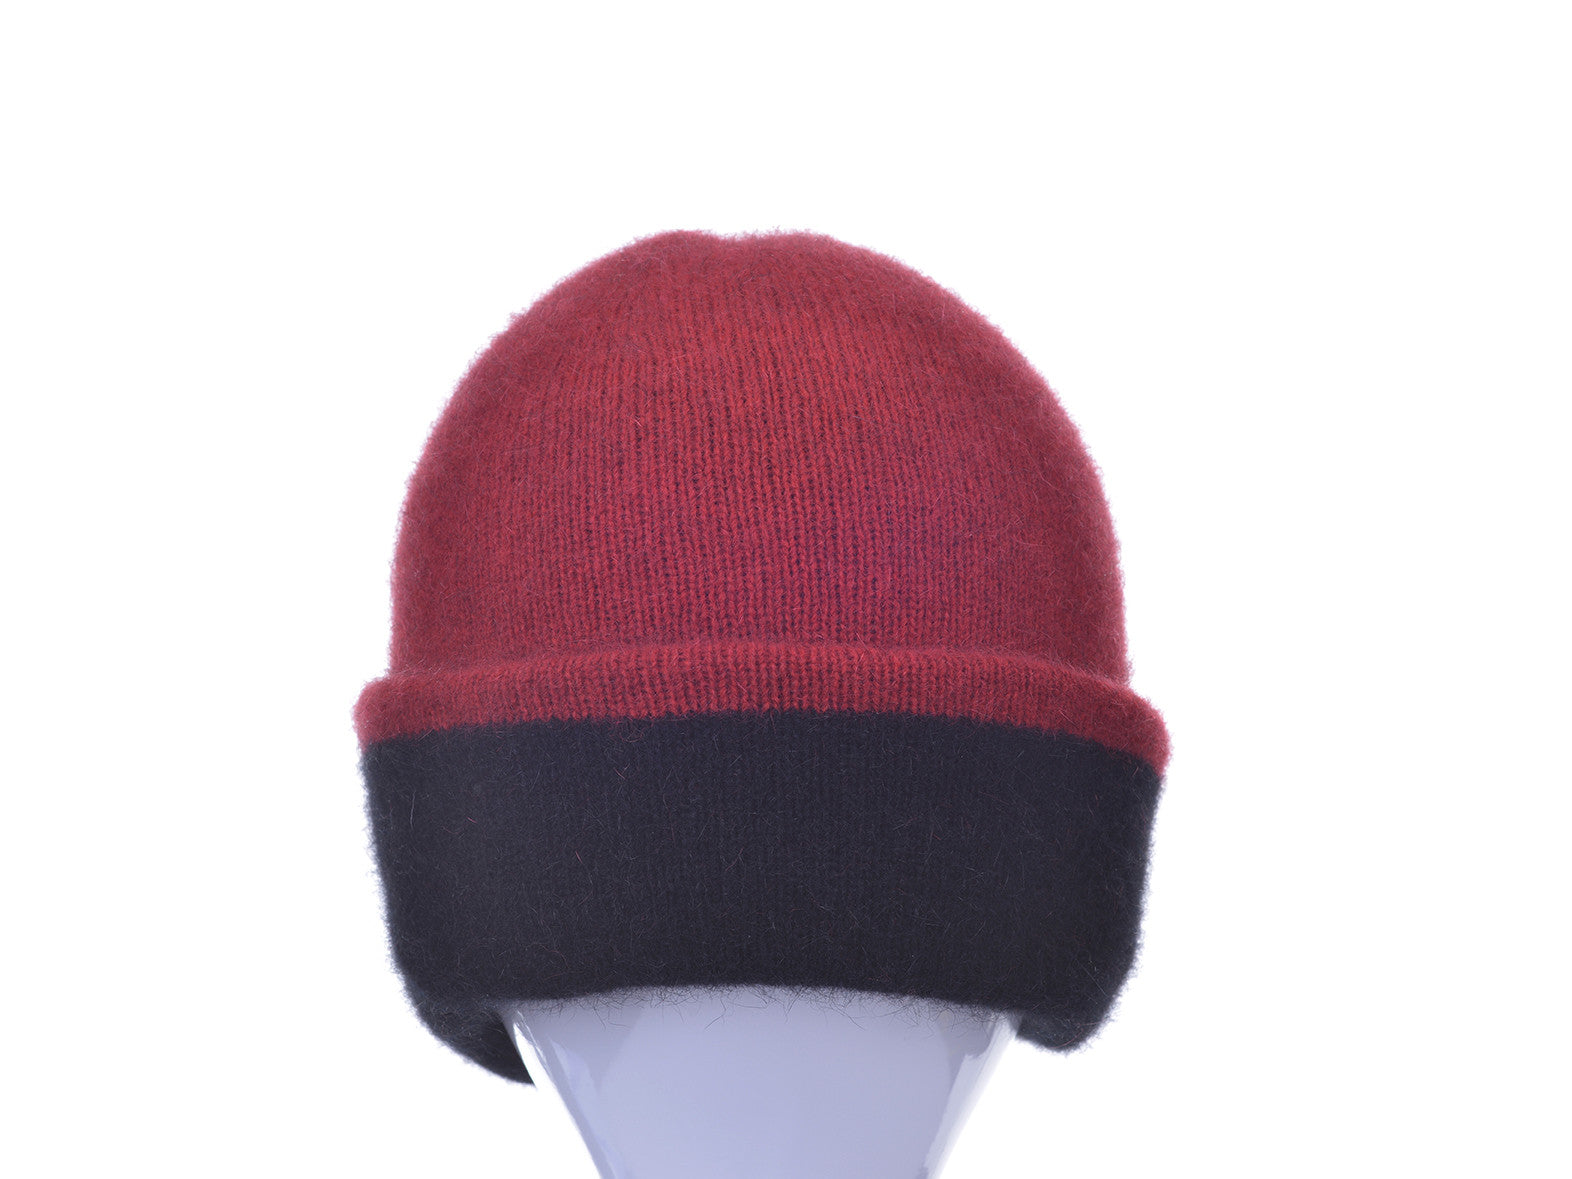 Possum Merino Two Toned Reversible Beanie